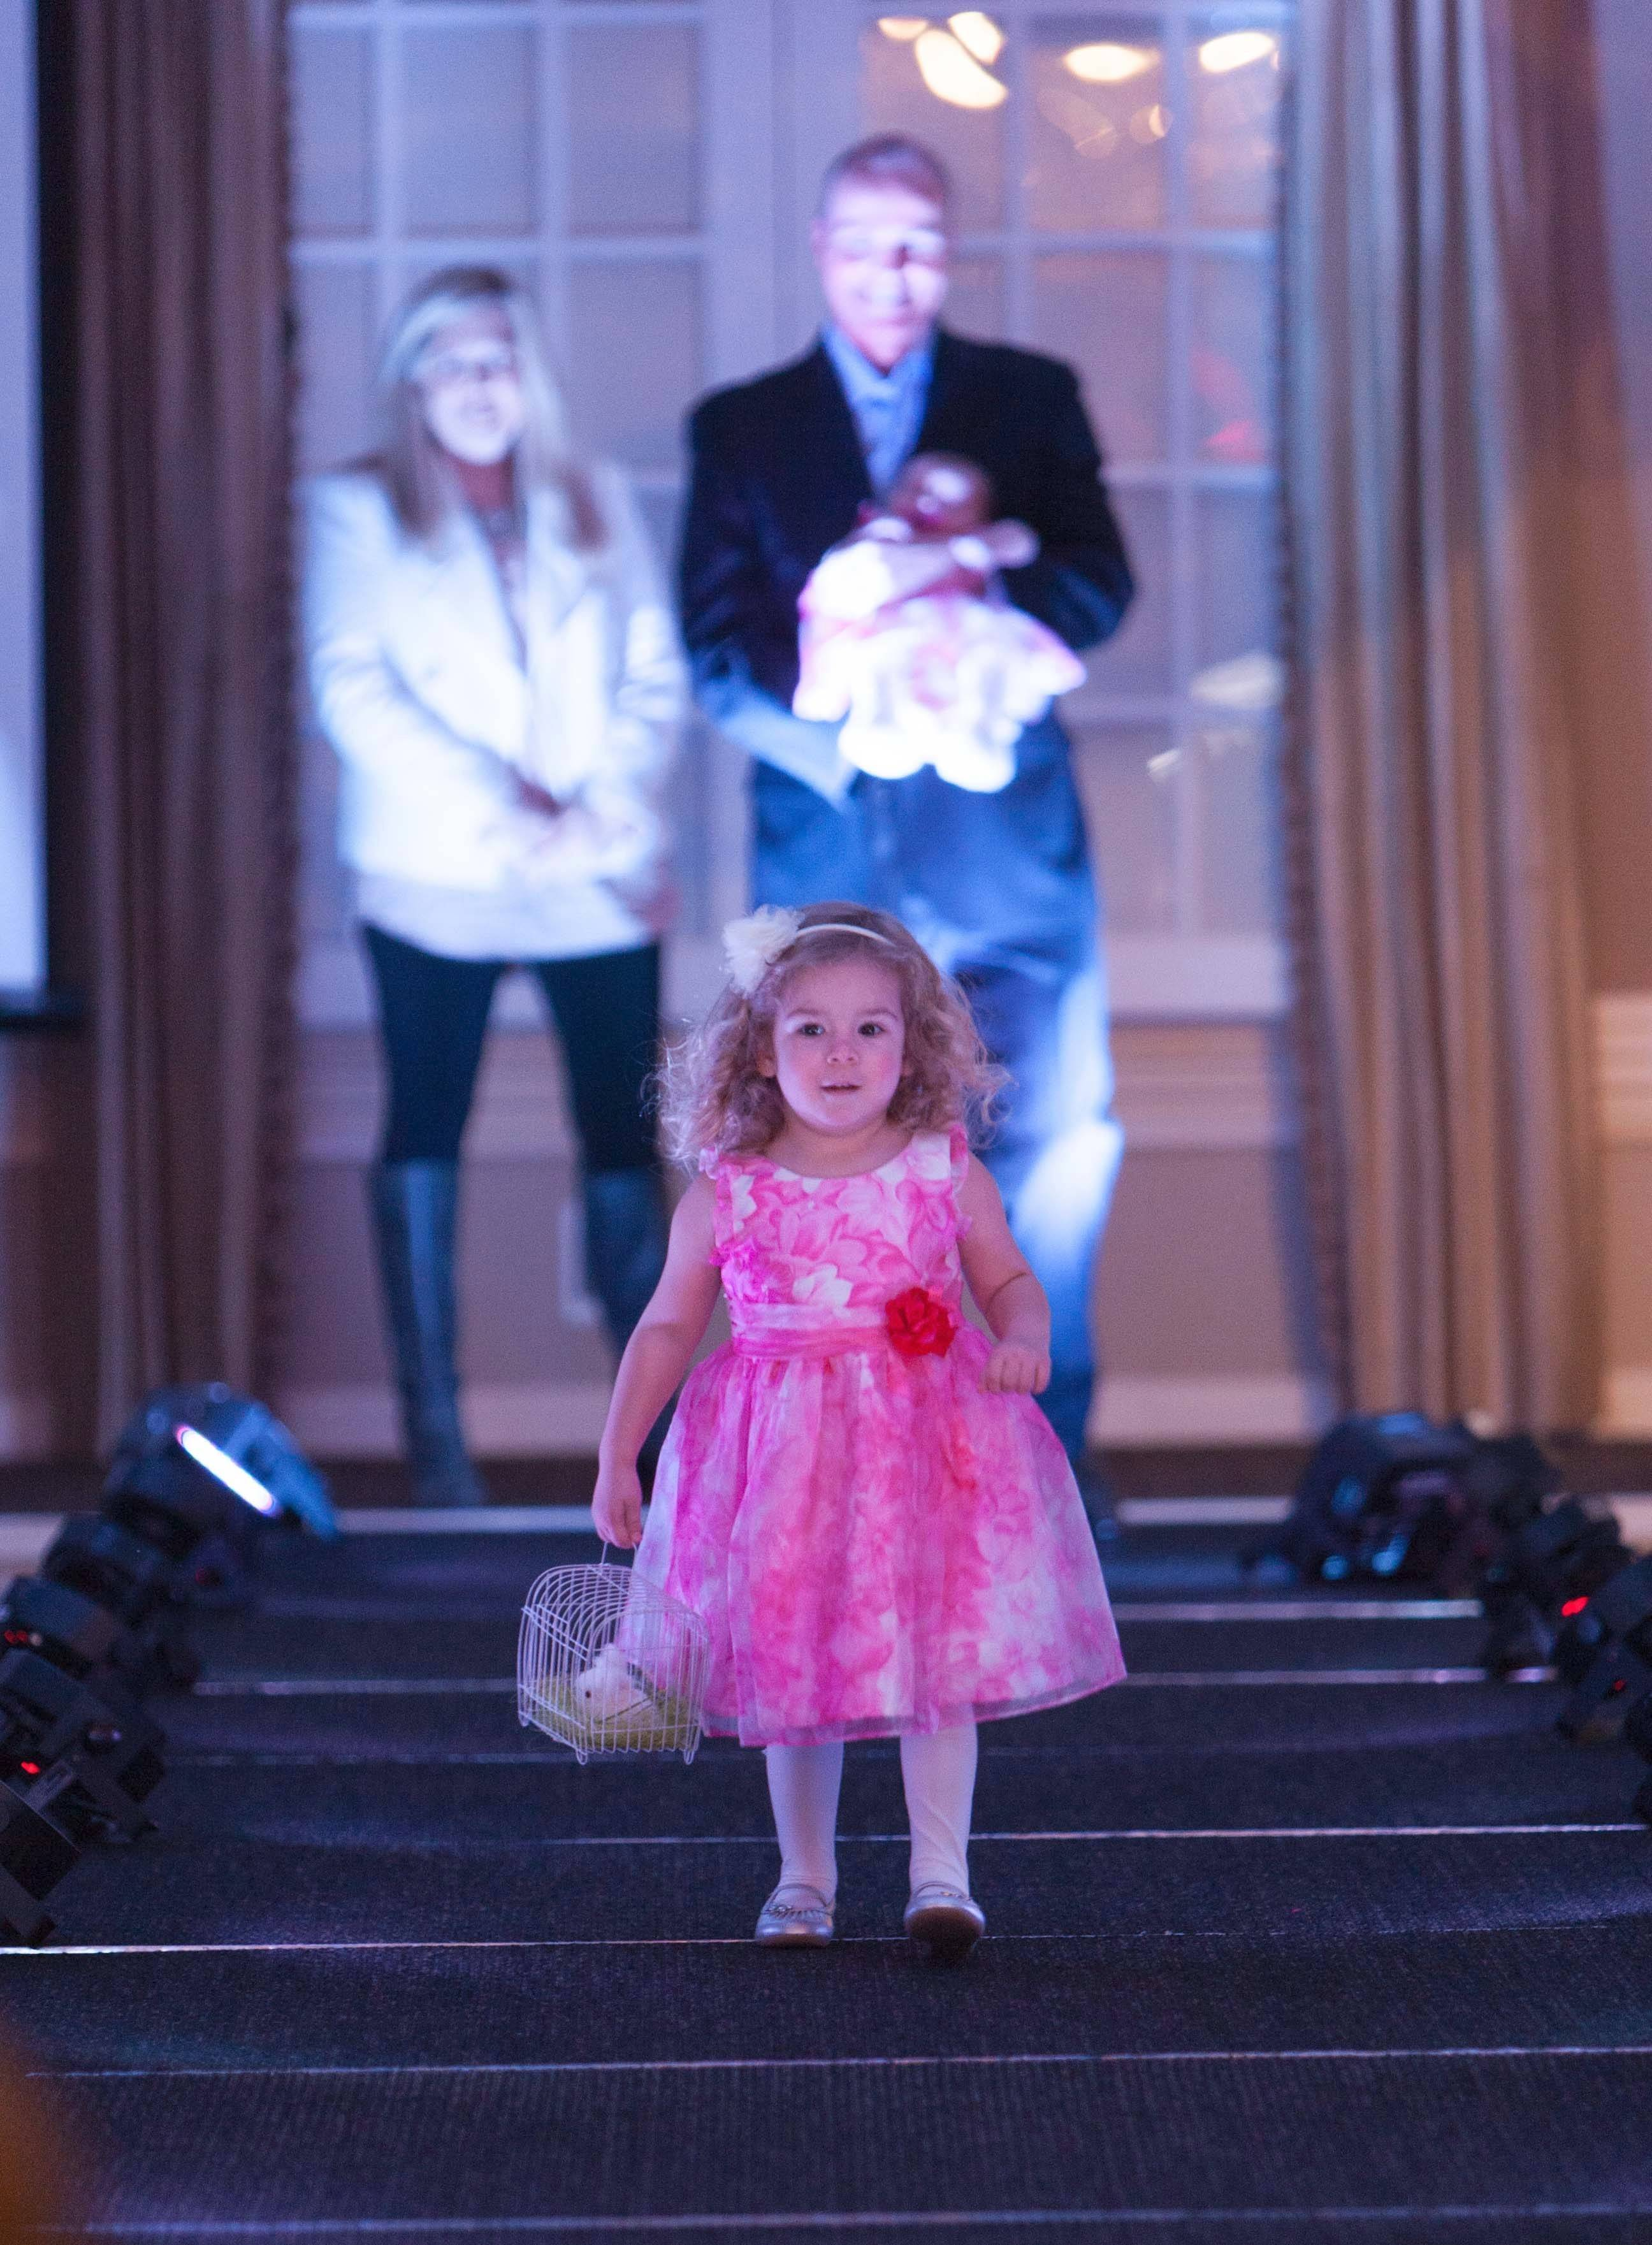 Chloe Cornell, 3, walks the runway at St. Mary's Services' fundraiser fashion show as parents Chris and Jennie Cornell of Gurnee look on. Chris is holding St. Mary's newest adoptee, 2-month-old Kate.